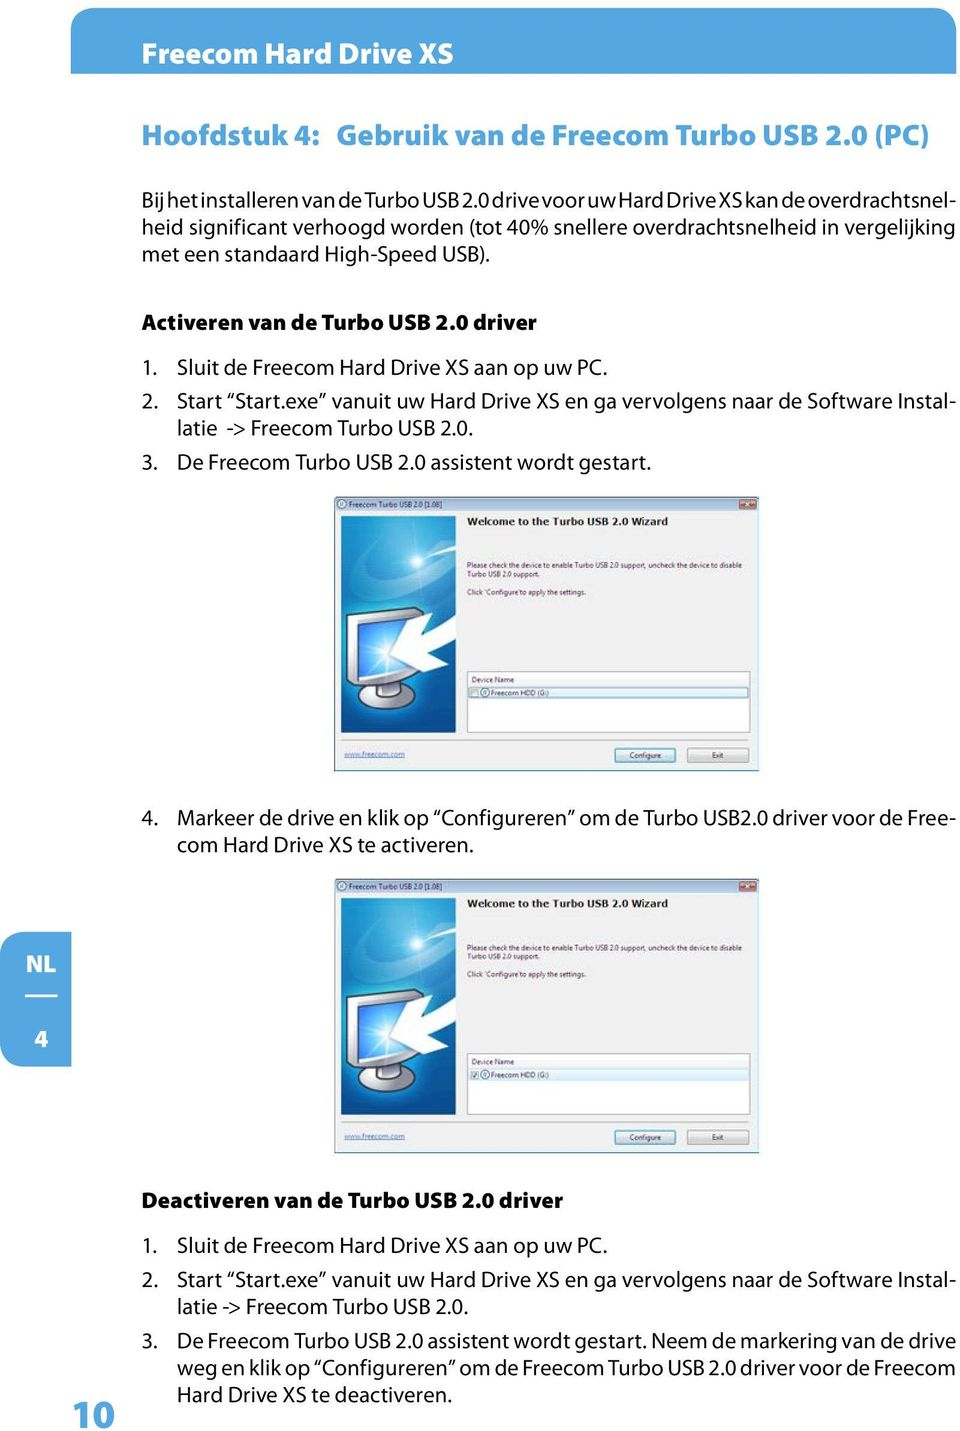 Activeren van de Turbo USB 2.0 driver 1. Sluit de Freecom Hard Drive XS aan op uw PC. 2. Start Start.exe vanuit uw Hard Drive XS en ga vervolgens naar de Software Installatie -> Freecom Turbo USB 2.0. 3.